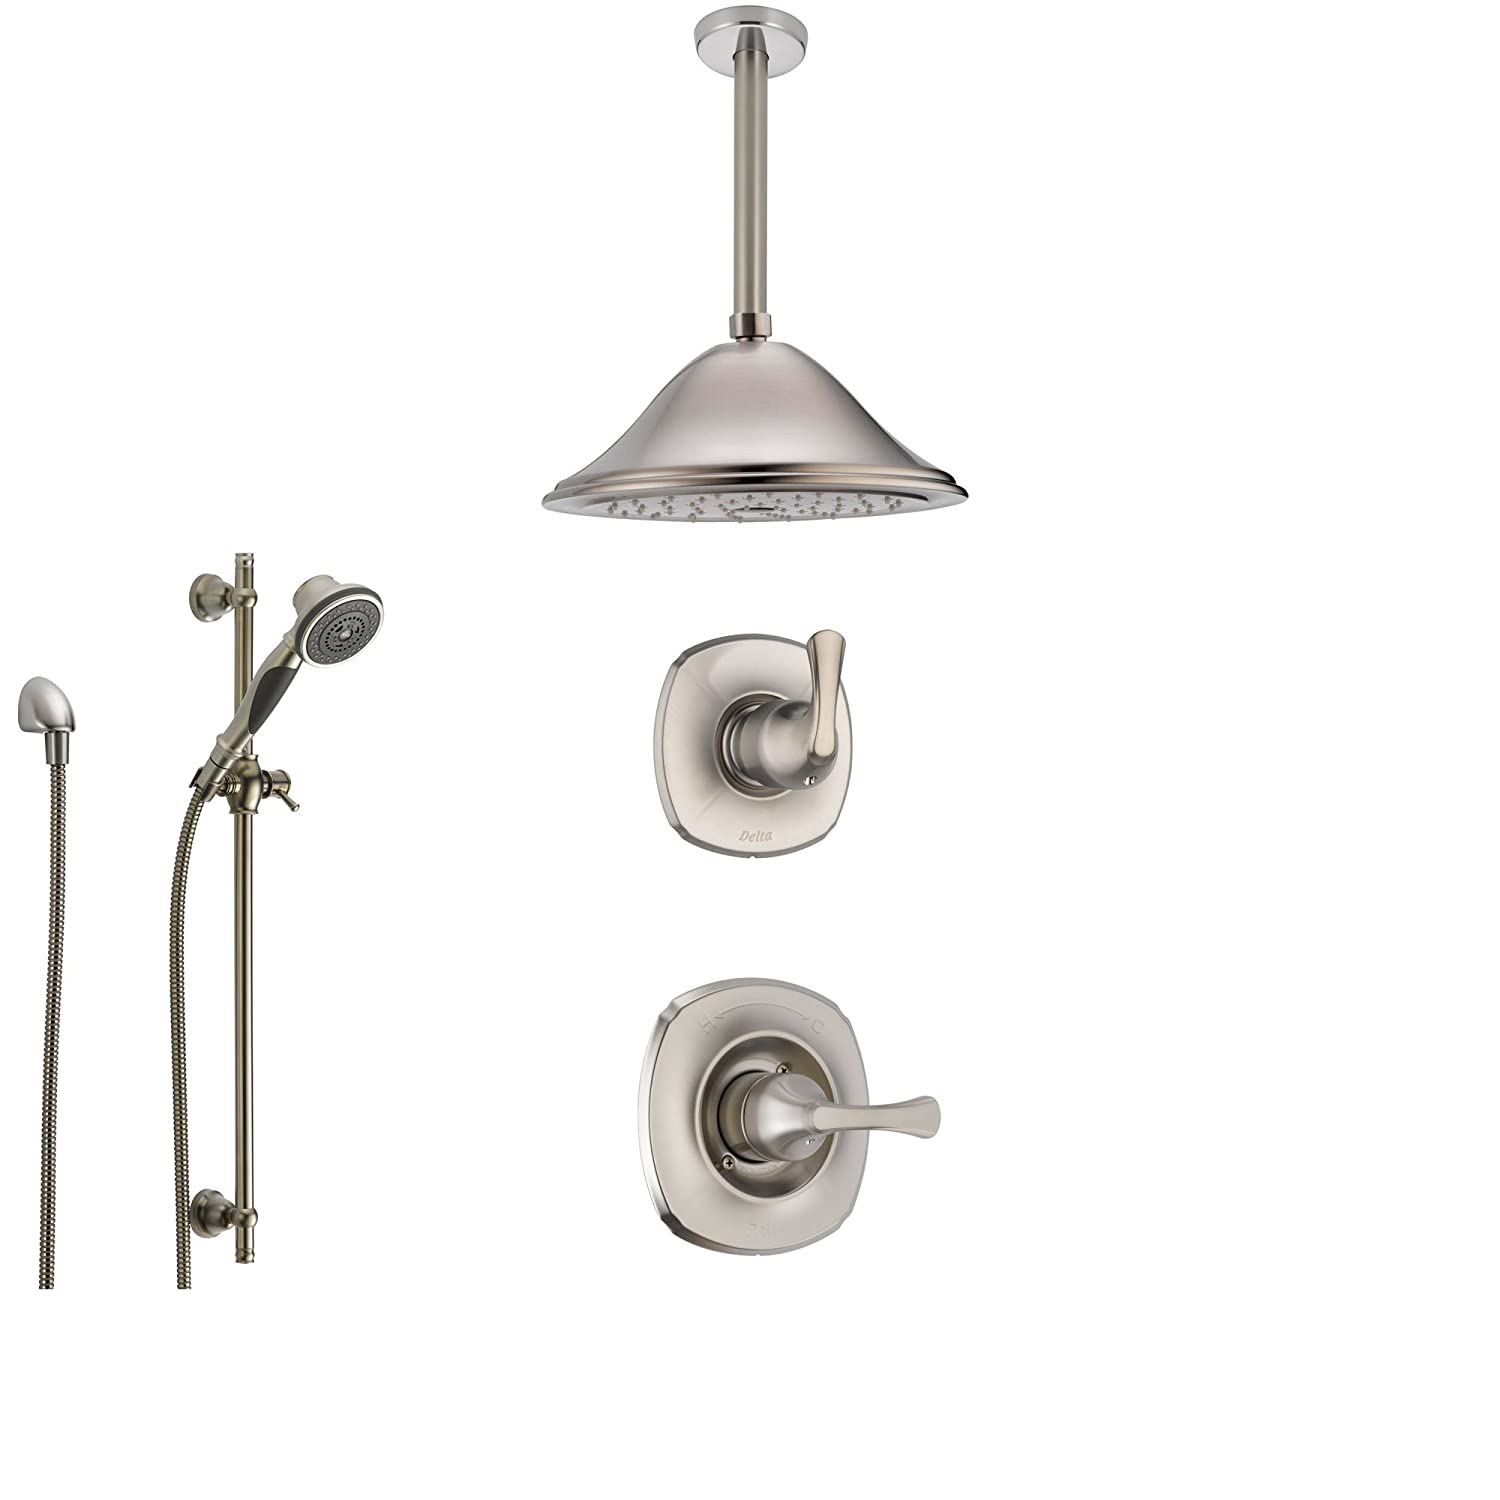 Delta Addison Stainless Steel Shower System With Normal Shower